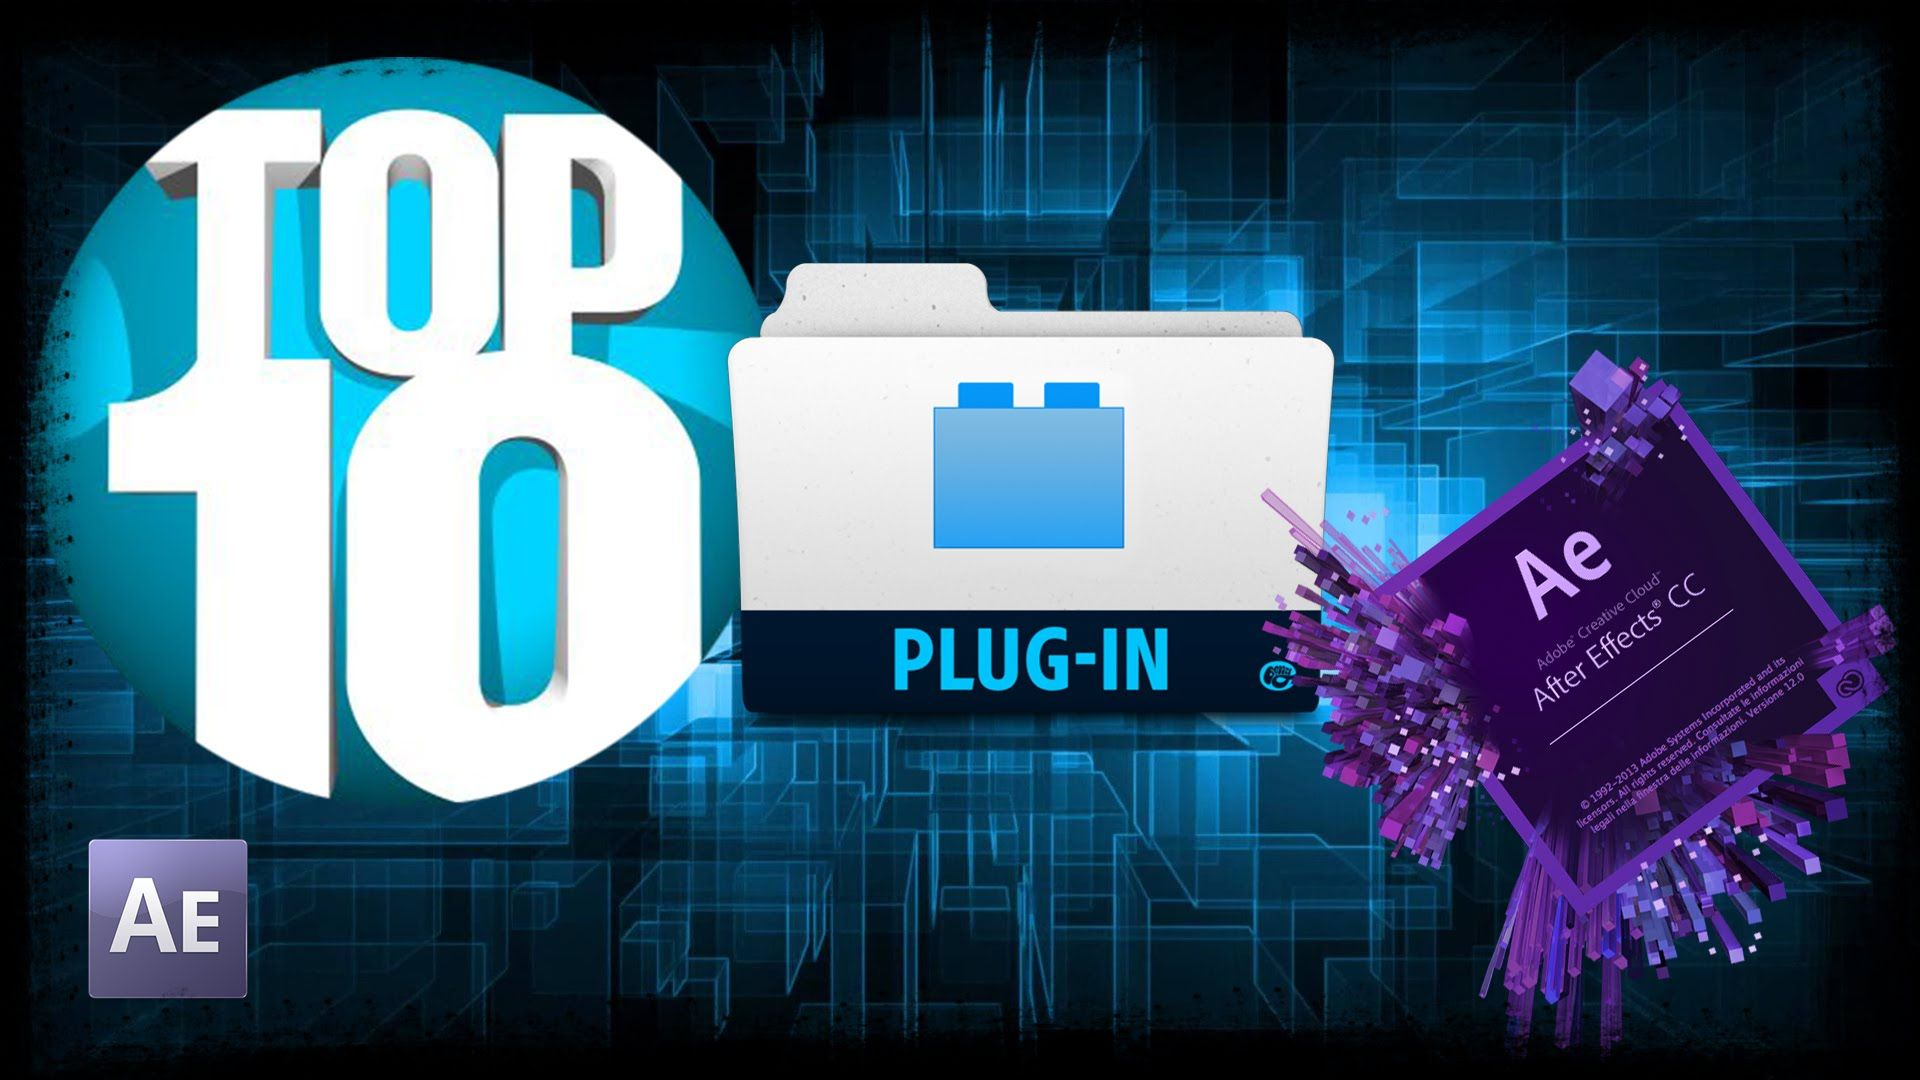 Top 10 Best After Effects Plugins You Should Have Adobe After Effects Tutorials After Effects After Effect Tutorial